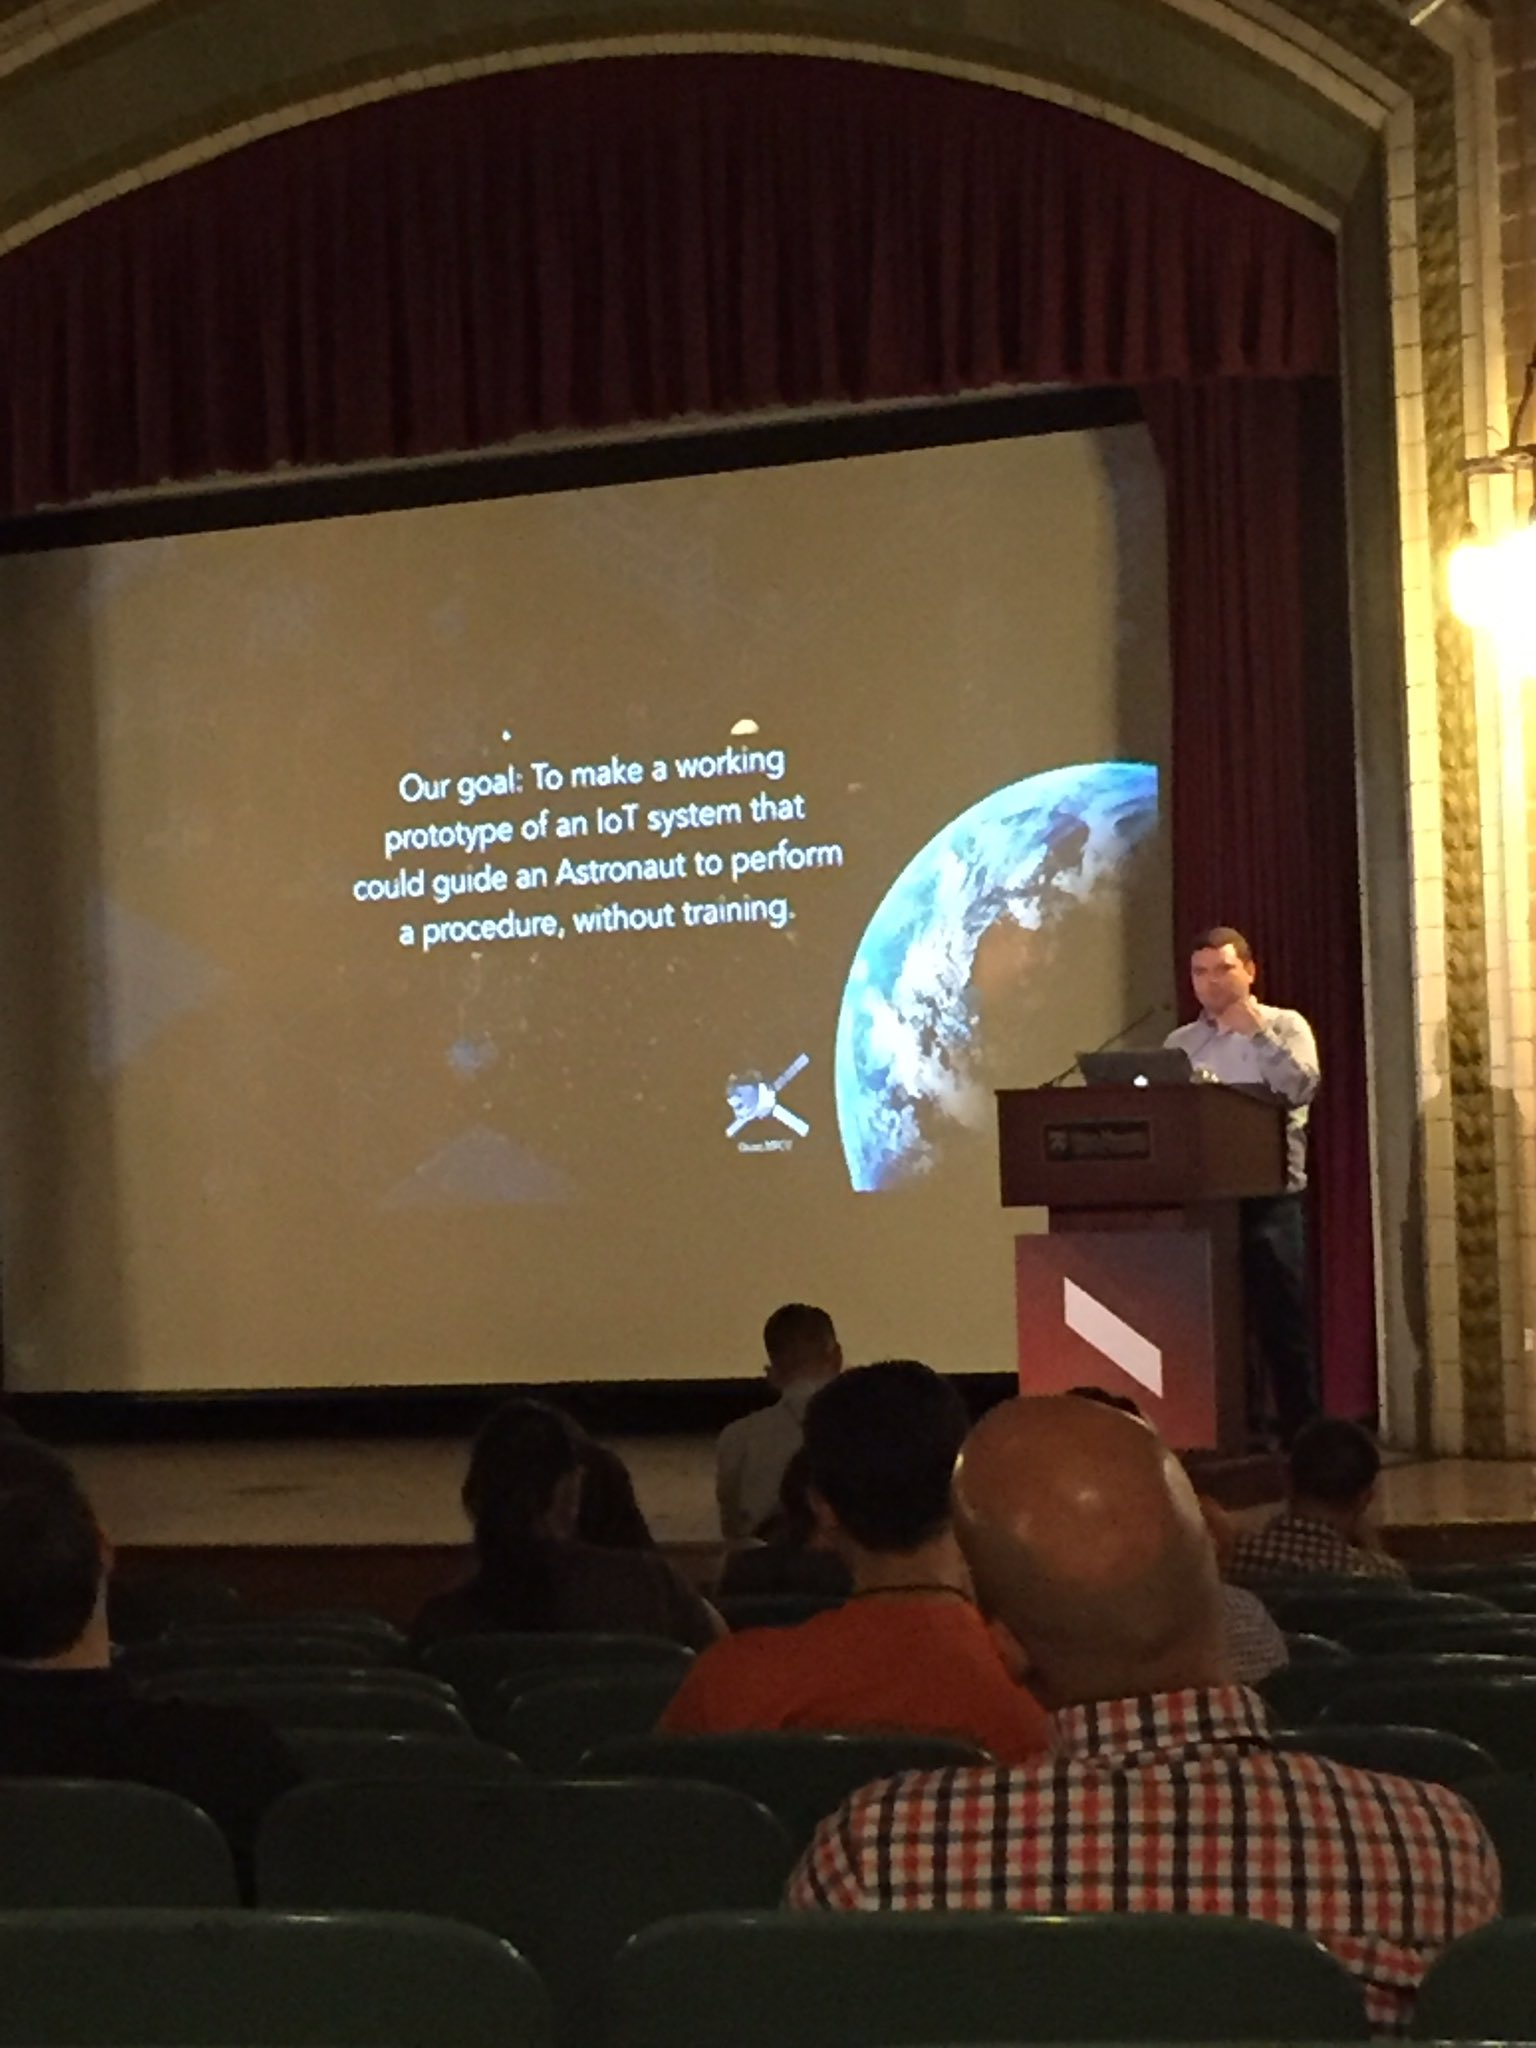 Stoked for the future of IoT + NASA  @Hillenius #forgeconf https://t.co/msg2zCDreL